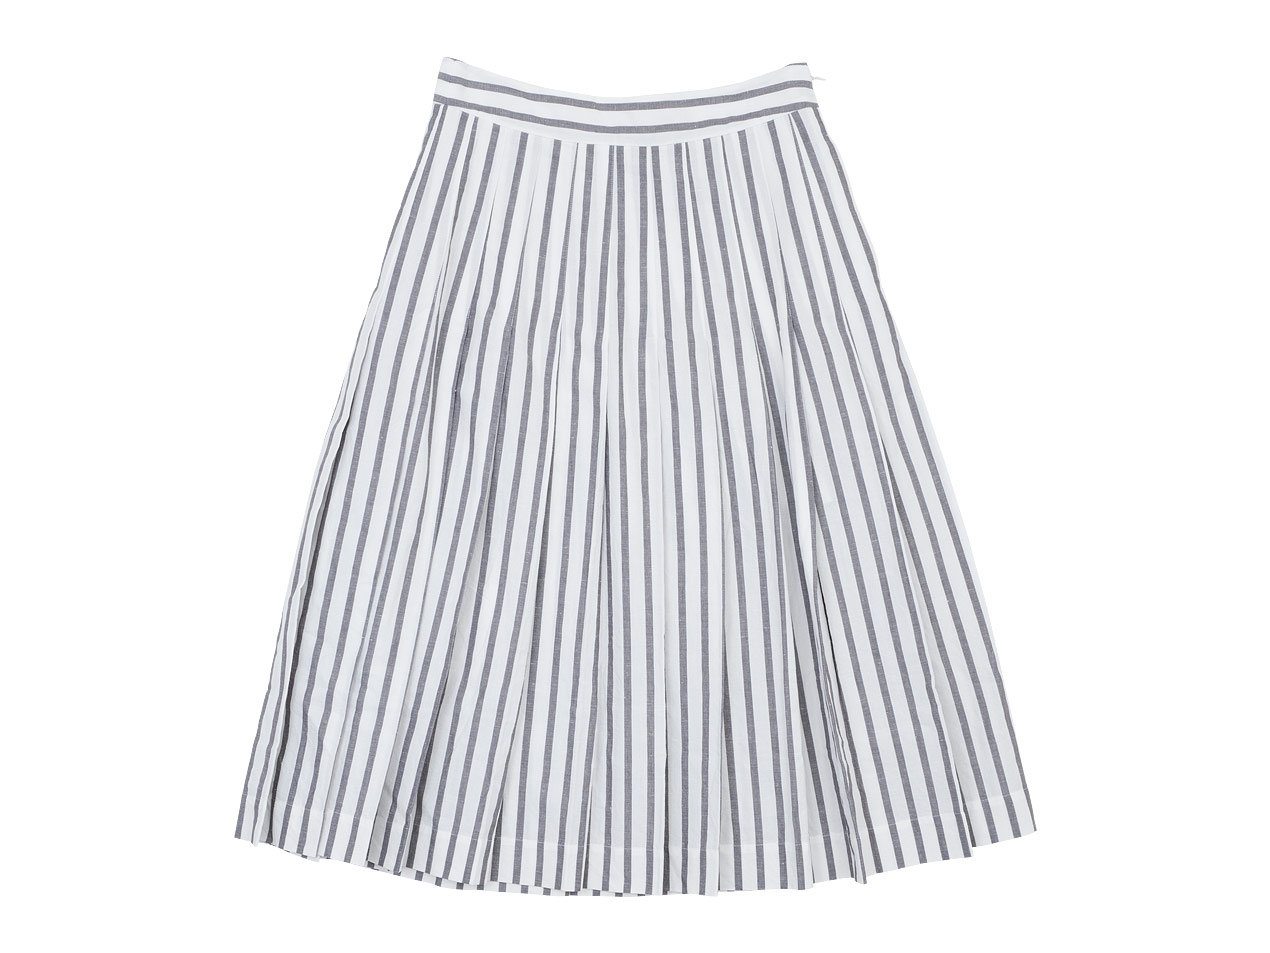 MARGARET HOWELL BOLD STRIPE COTTON LINEN SKIRT 022WHITE x GRAY 〔レディース〕